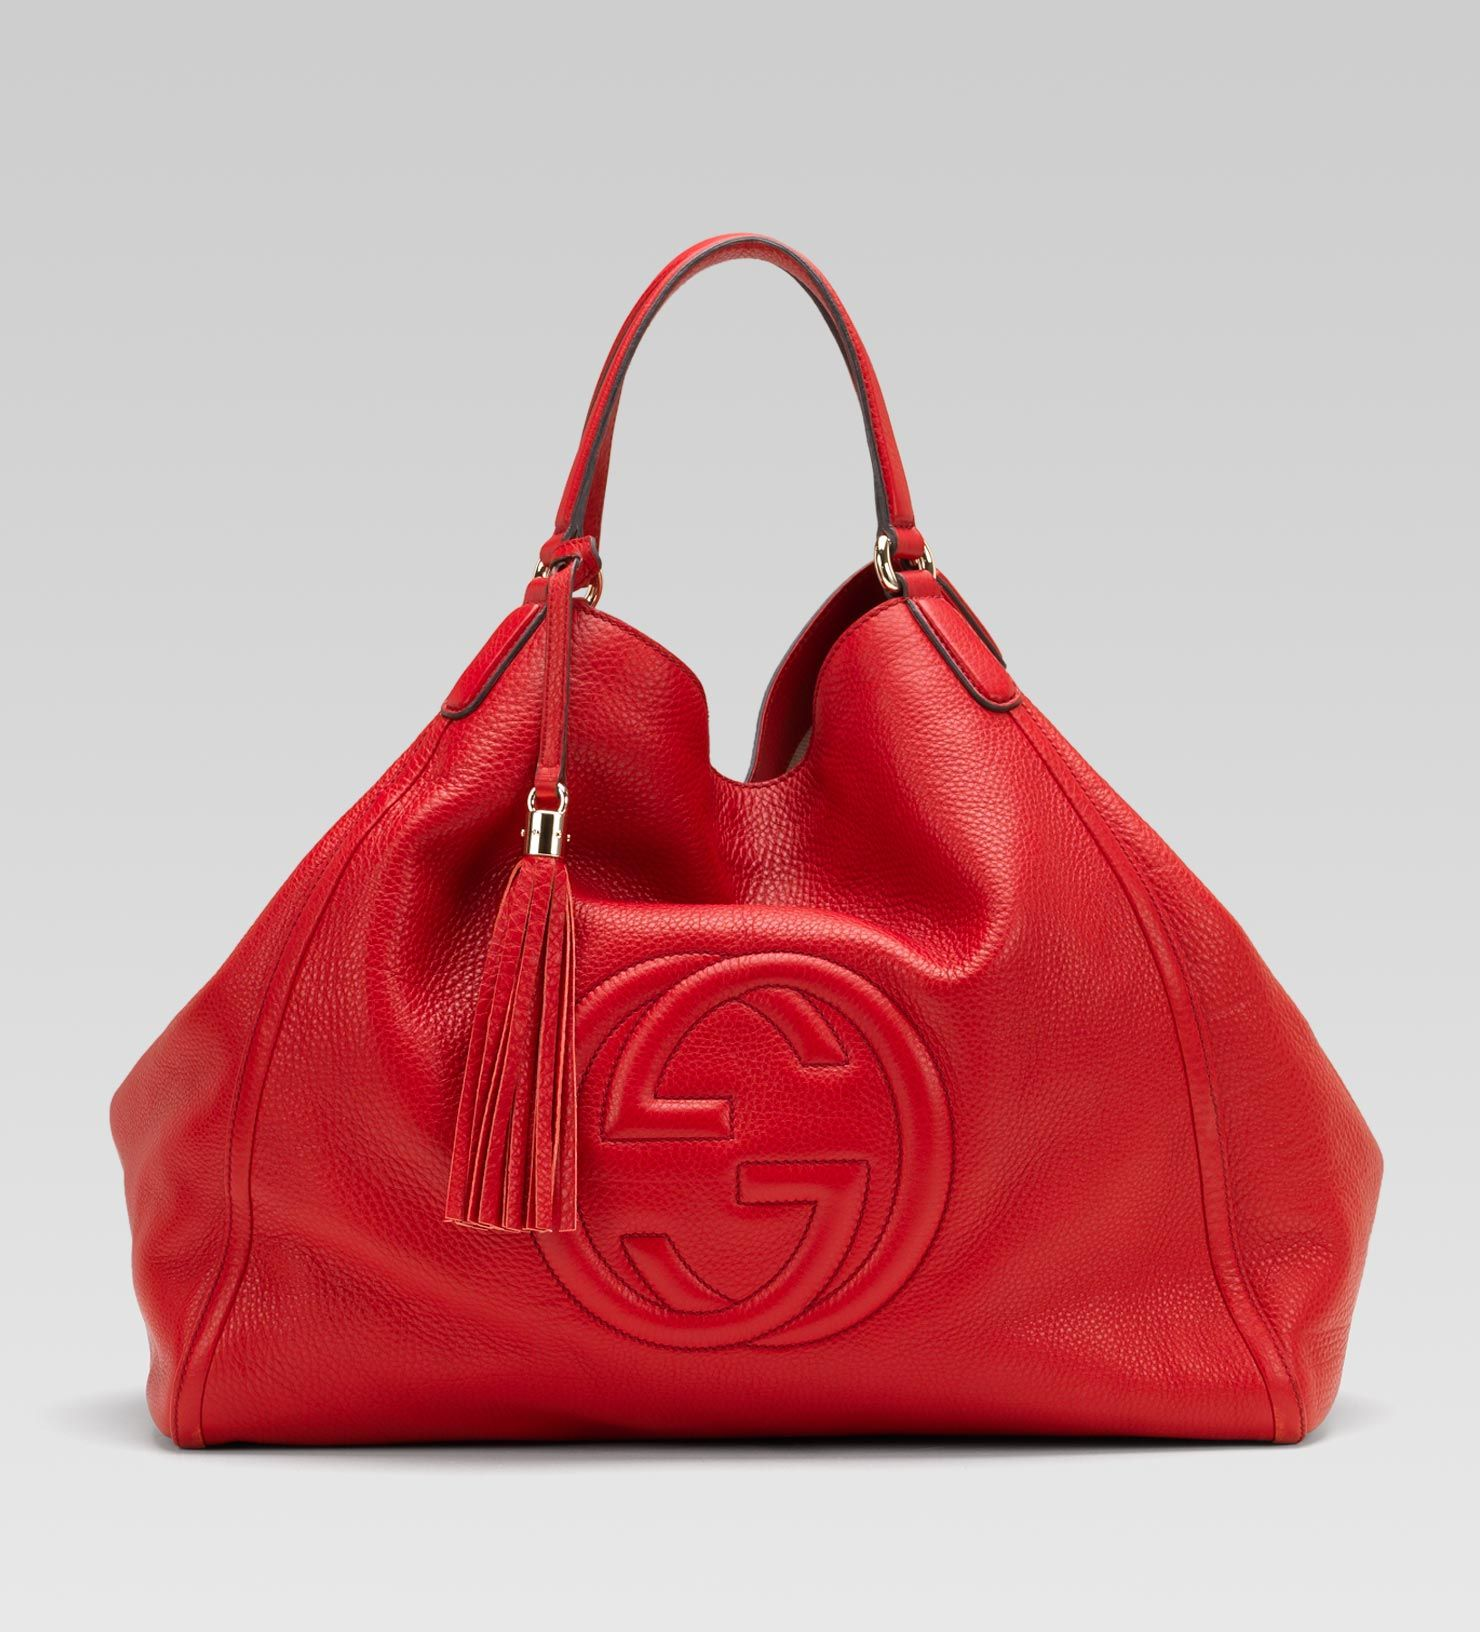 gucci bags for sale. gucci purses bags for sale n